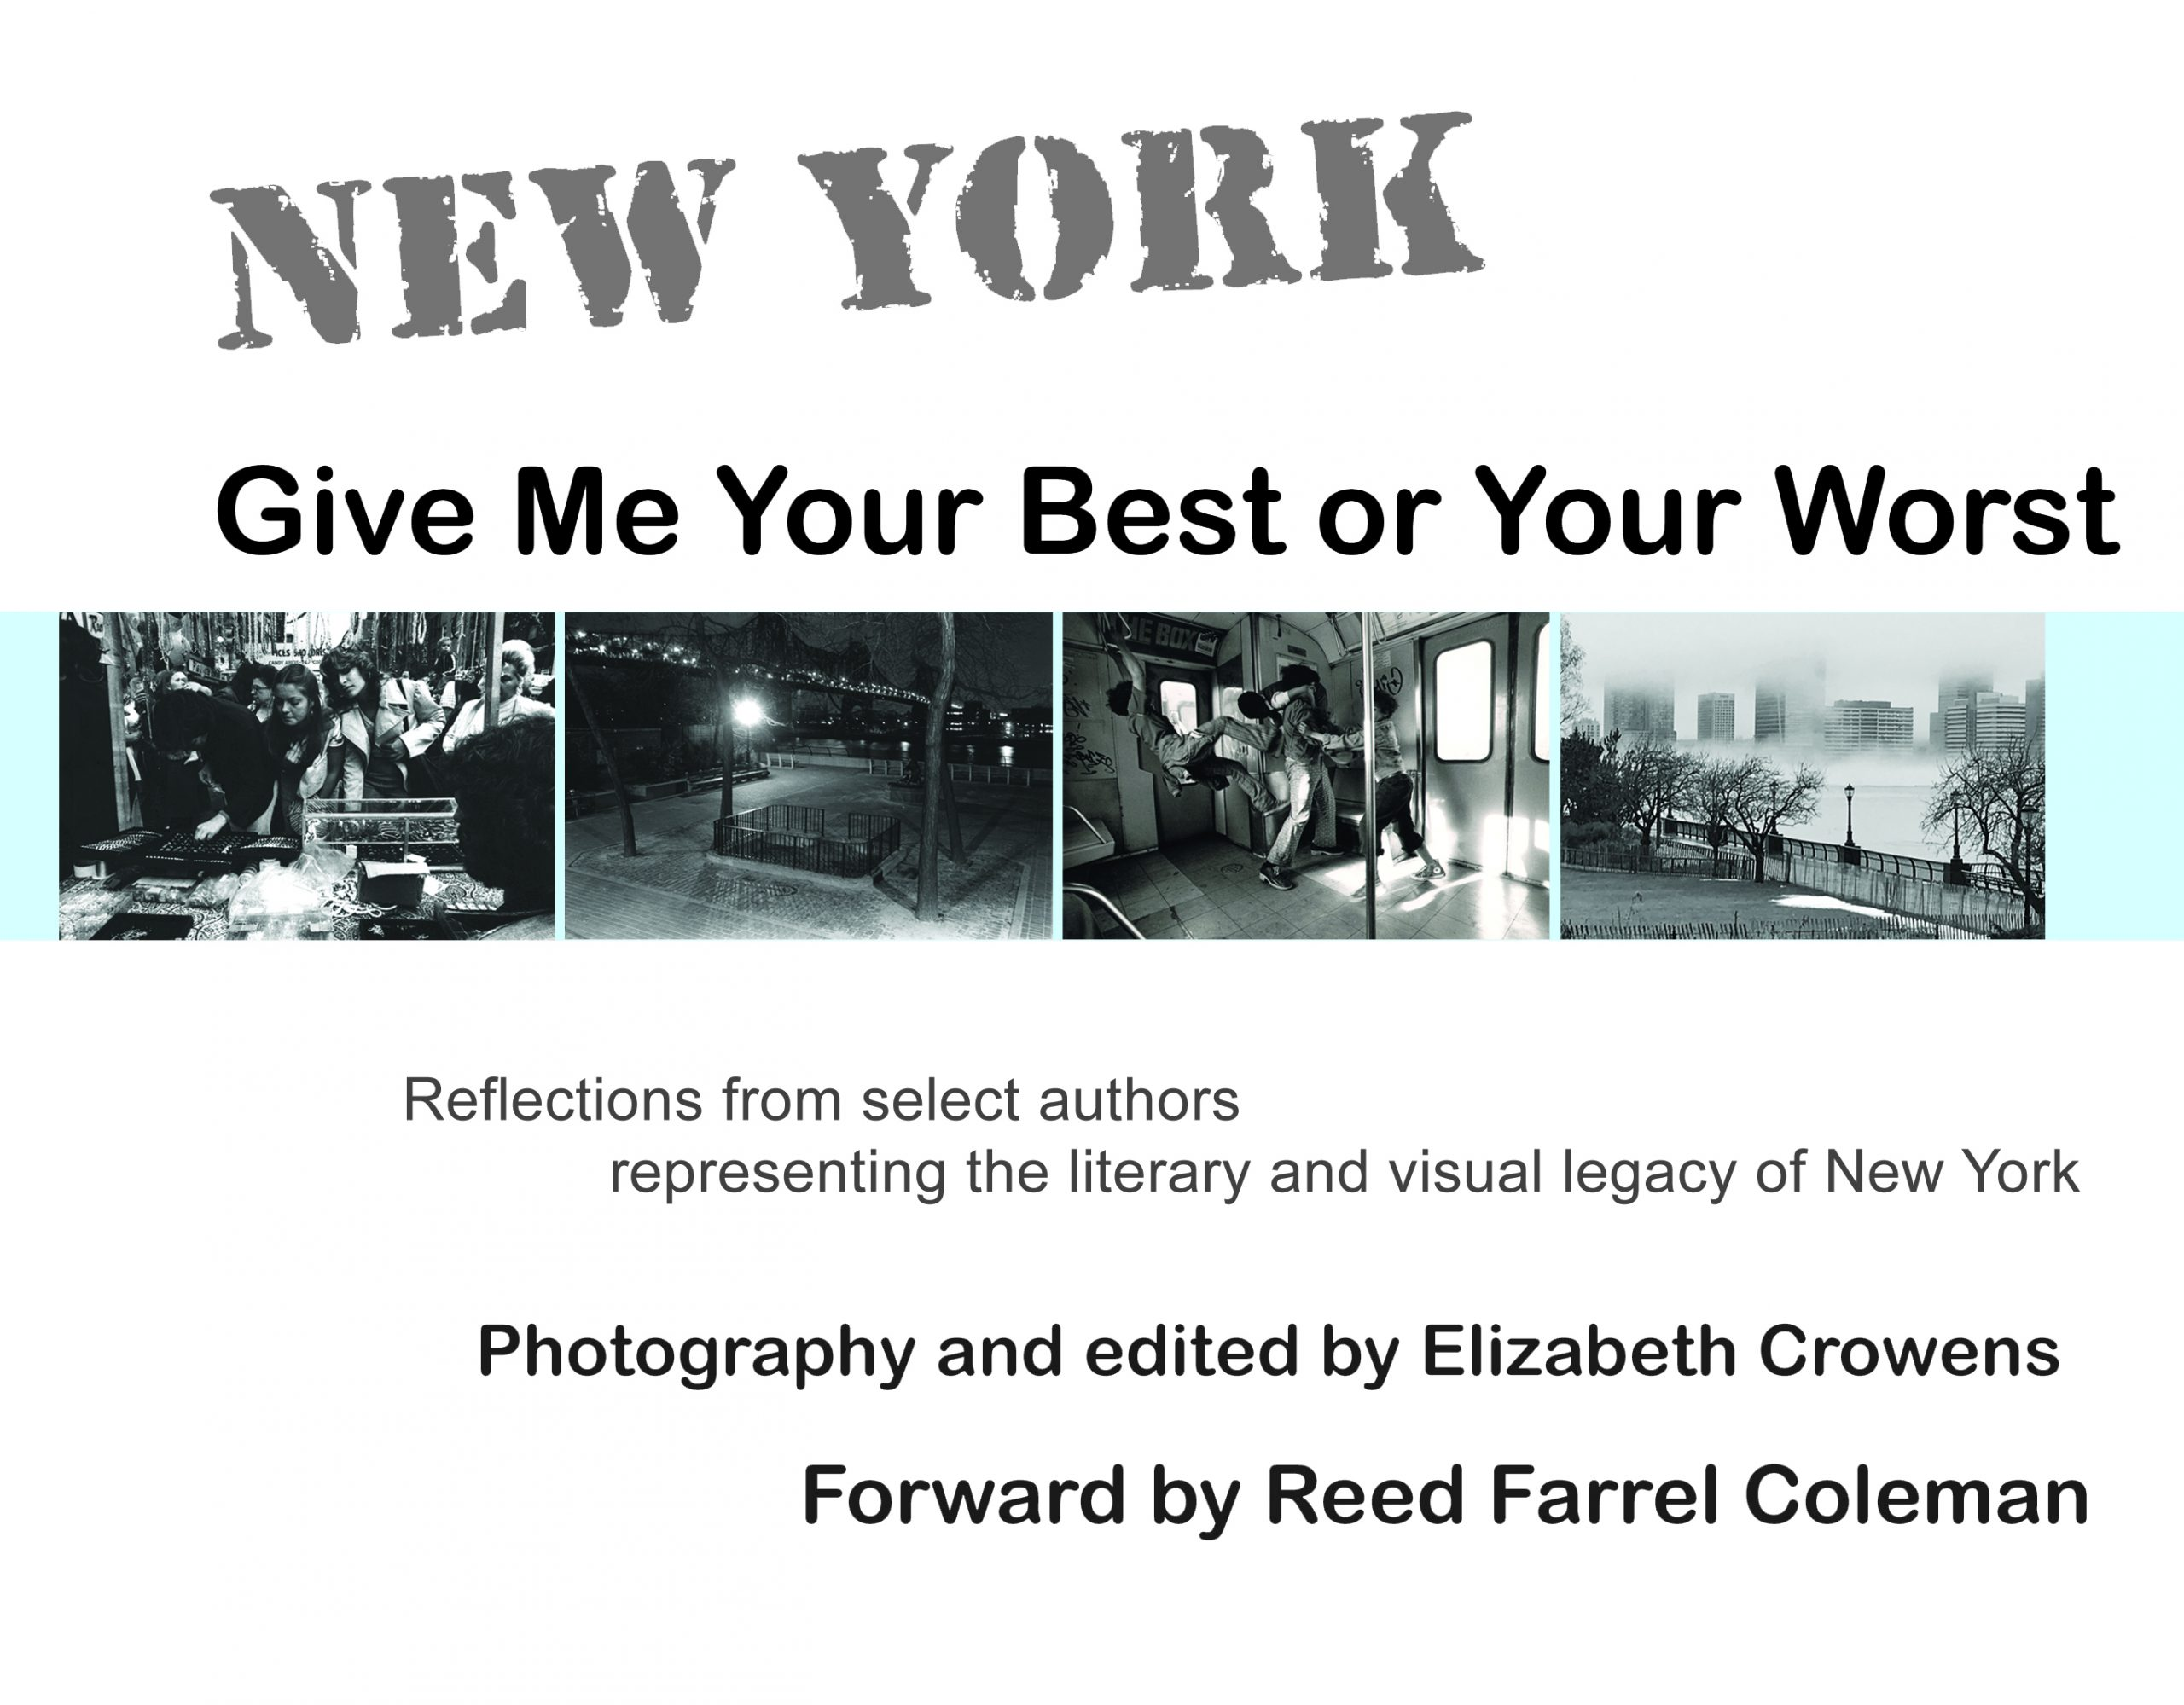 New York: Give Me Your Best or Your Worst by Elizabeth Crowens